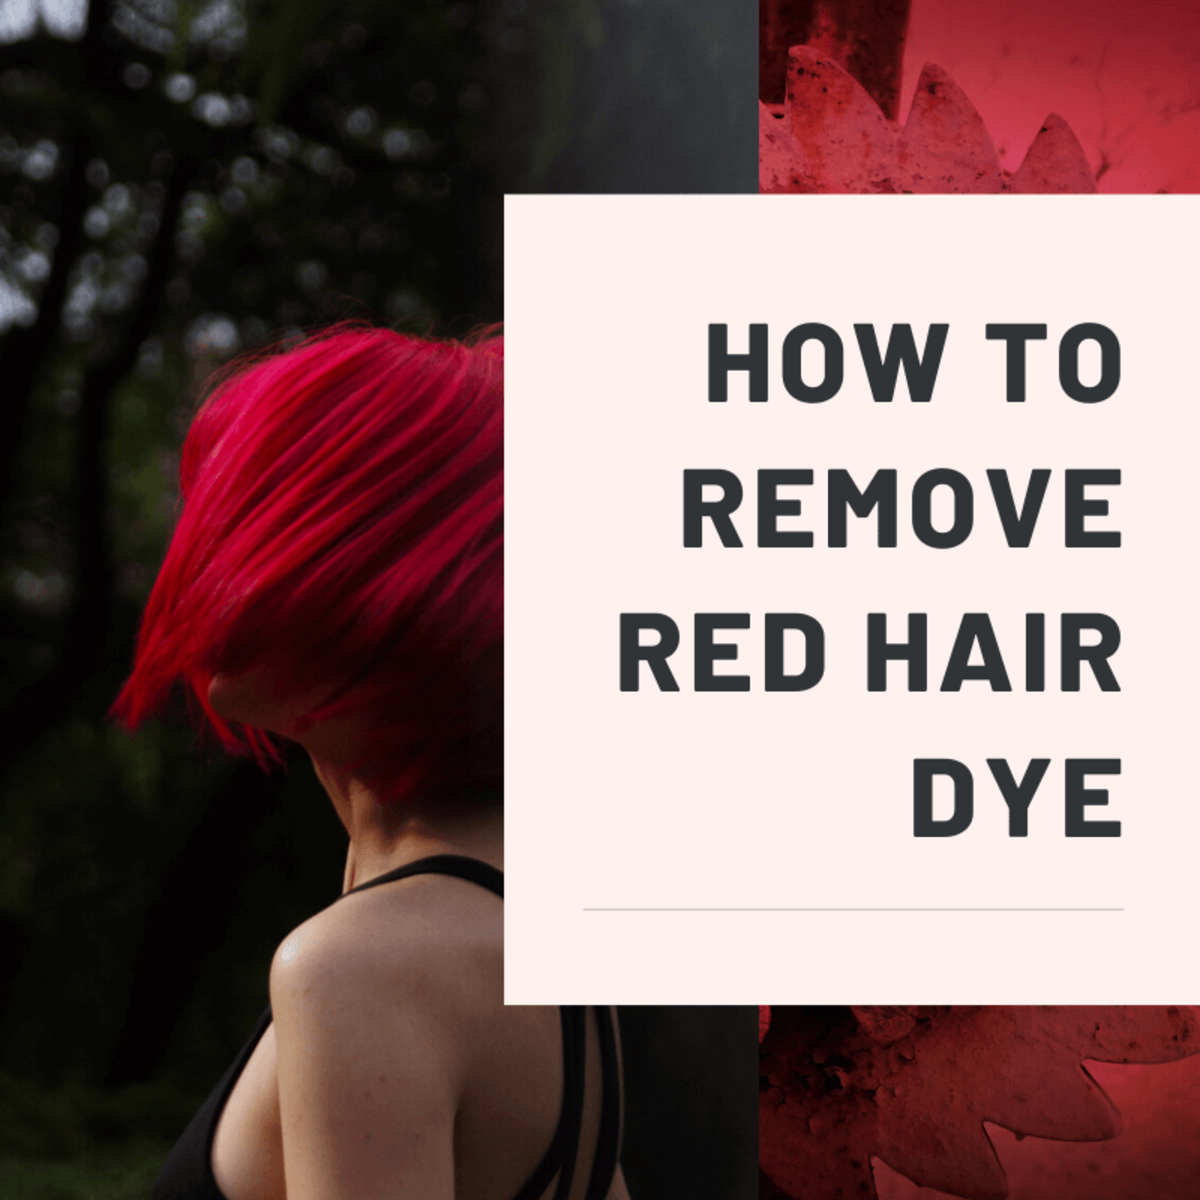 How to Remove Red Hair Dye